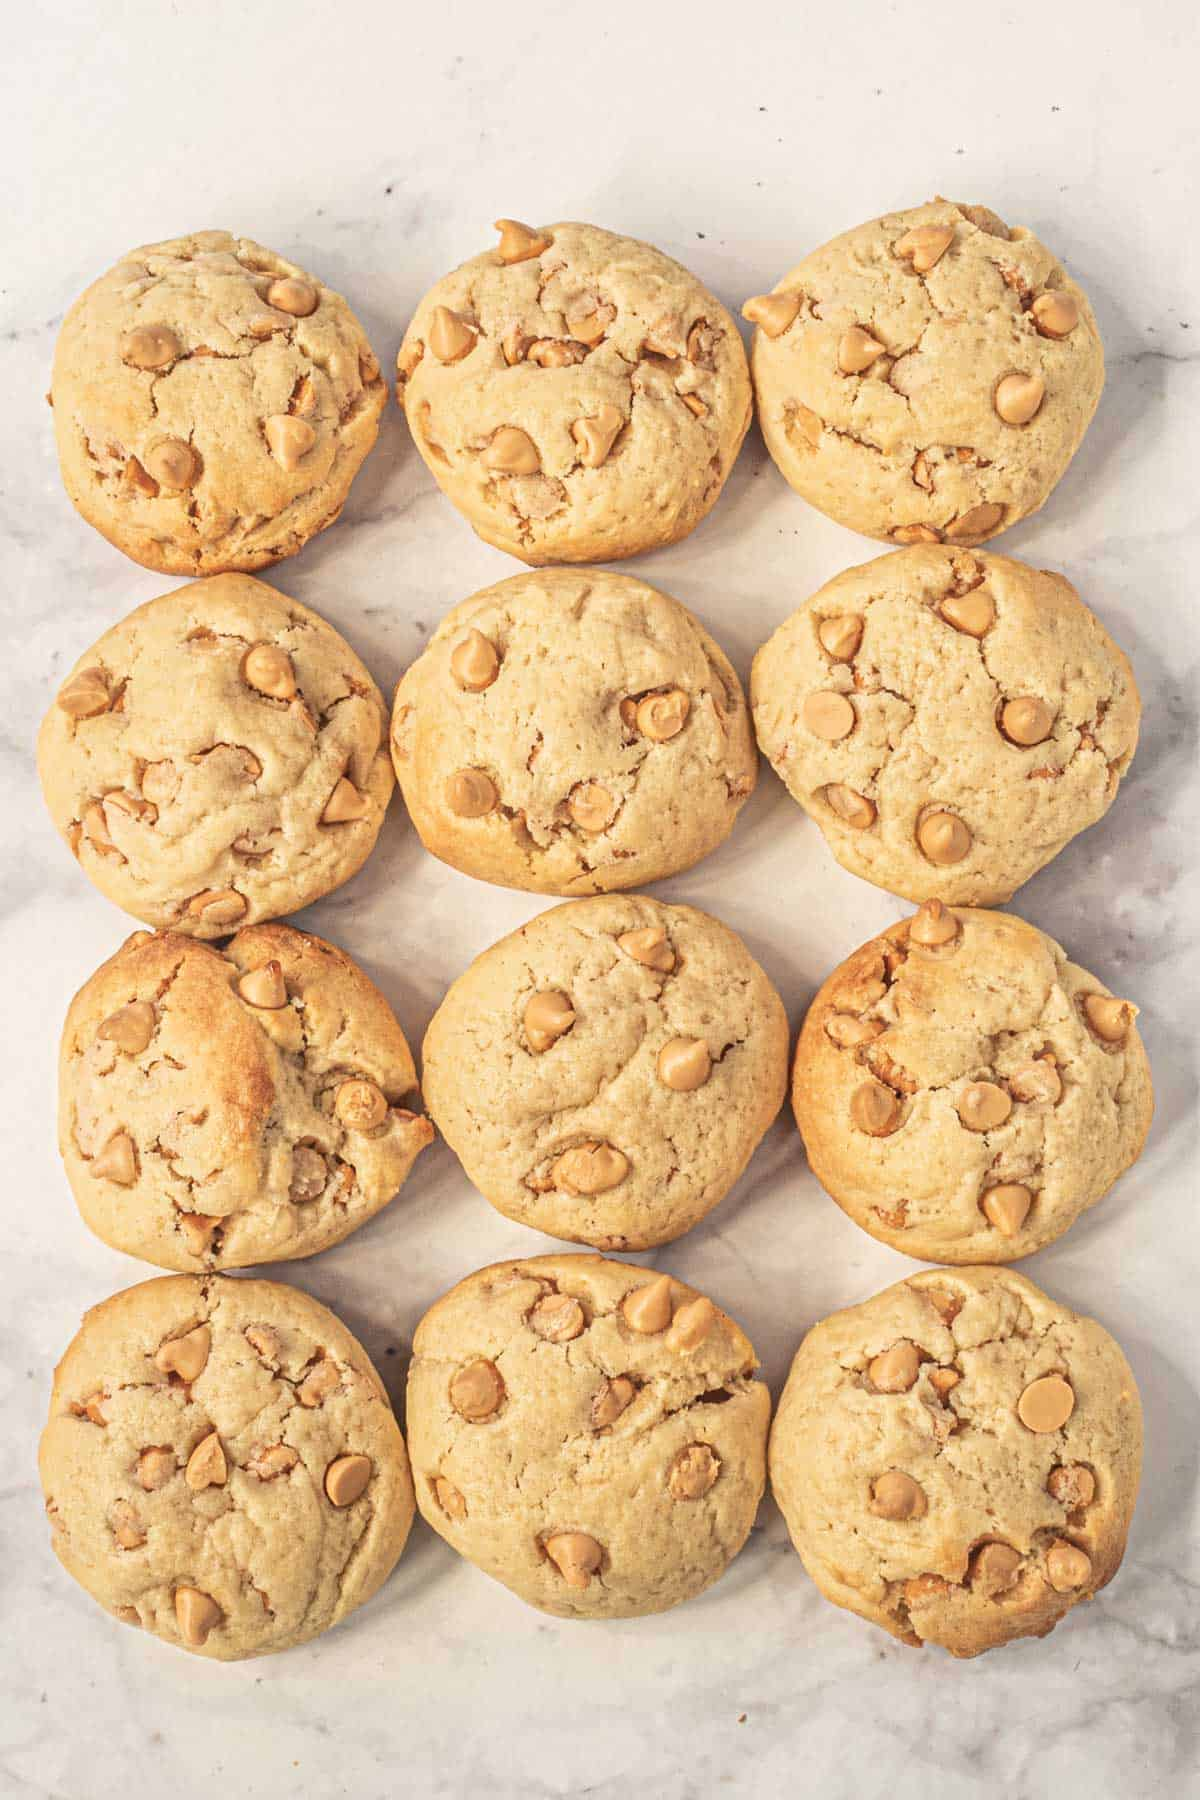 Peanut butter cookies with butterscotch chips arranged in rows